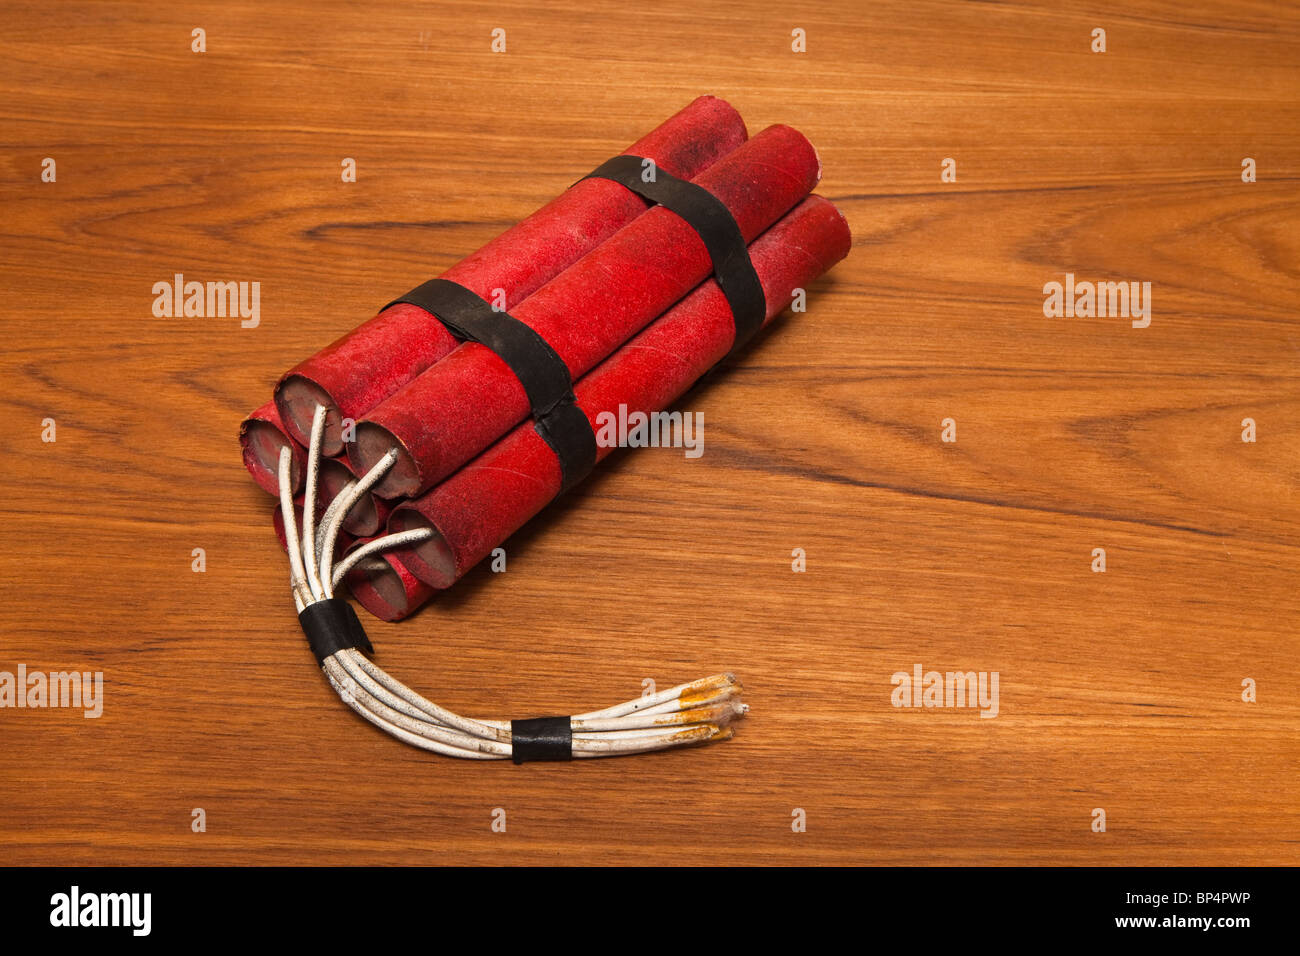 TNT,dynamite,explosive red,wood,bomb,indoors Stock Photo ...